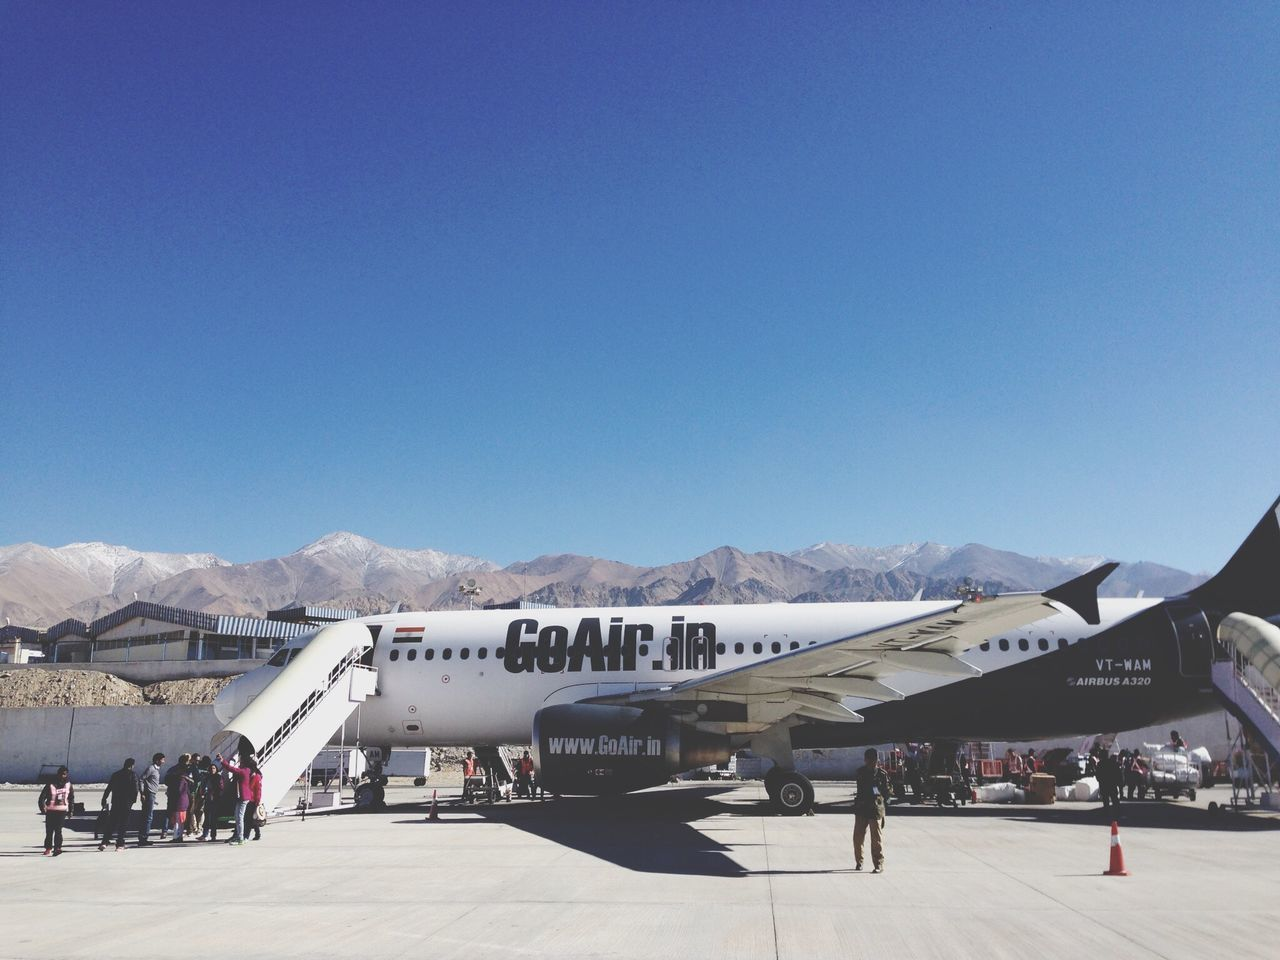 copy space, airport, day, transportation, airplane, mountain, clear sky, outdoors, blue, air vehicle, mountain range, large group of people, shadow, real people, sky, people